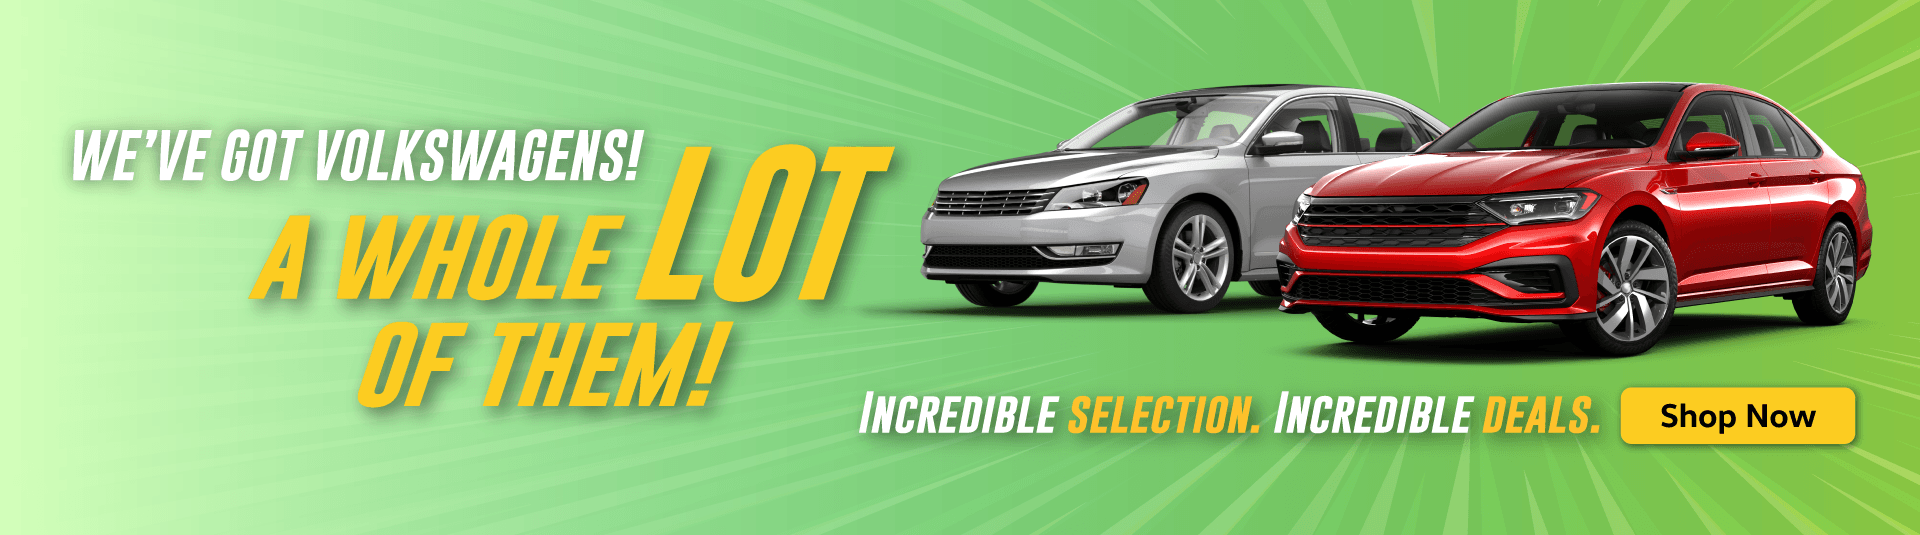 https://www.autoparkmississauga.ca/used/group/Volkswagen.html